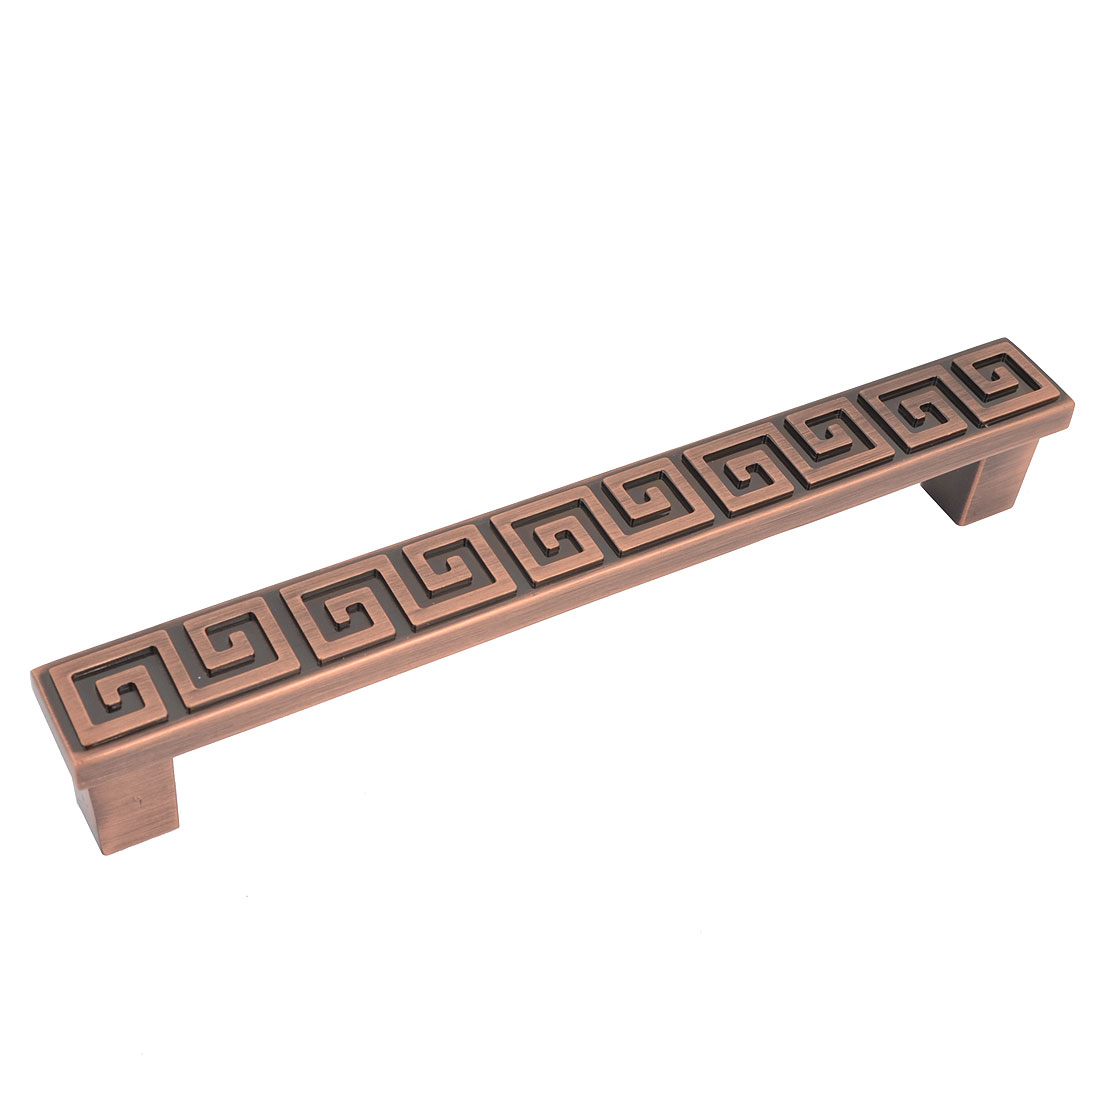 Retro Style Copper Tone Metal Cabinet Drawer Door Pull Handle 5.4""